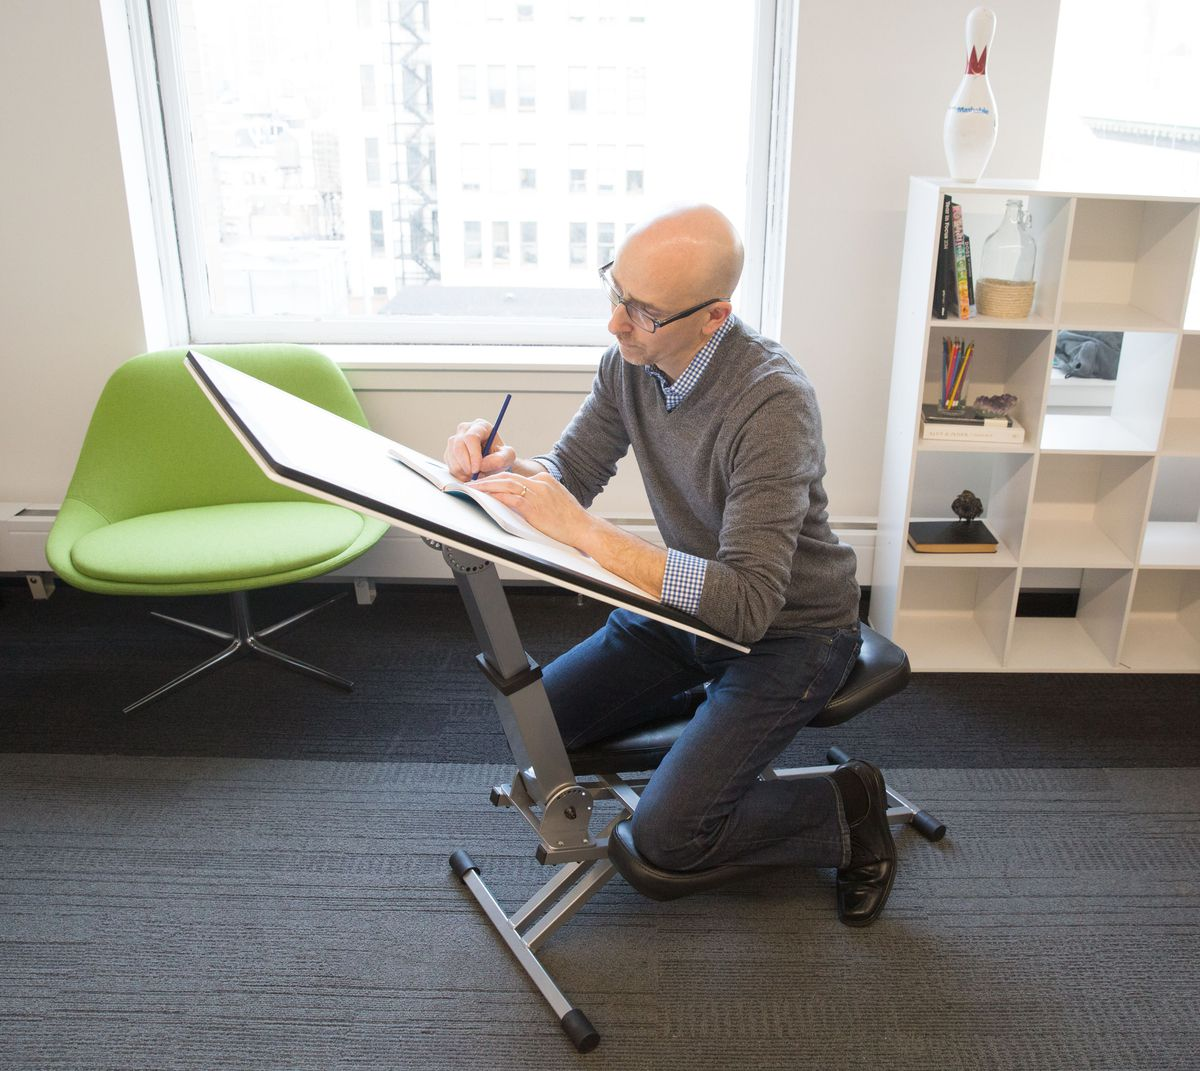 The Kneeling Desk Is The New Way To Work Without Getting Tired